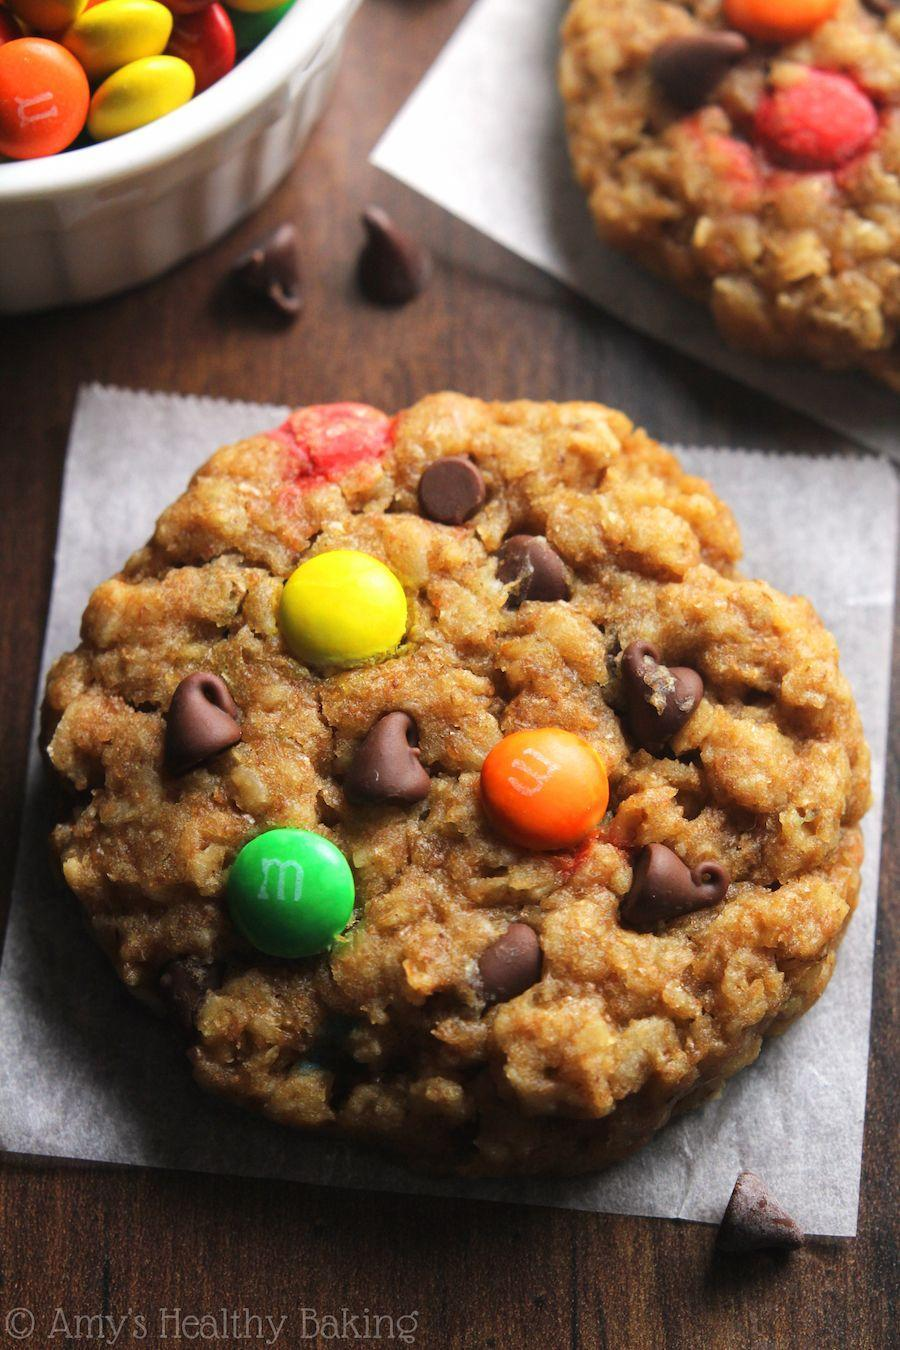 """<p>You mean M&M's are diet approved? 🙌</p><p>Get the recipe from <a href=""""http://amyshealthybaking.com/blog/2015/05/10/healthy-classic-monster-cookies/"""" rel=""""nofollow noopener"""" target=""""_blank"""" data-ylk=""""slk:Amy's Healthy Baking"""" class=""""link rapid-noclick-resp"""">Amy's Healthy Baking</a>.</p>"""